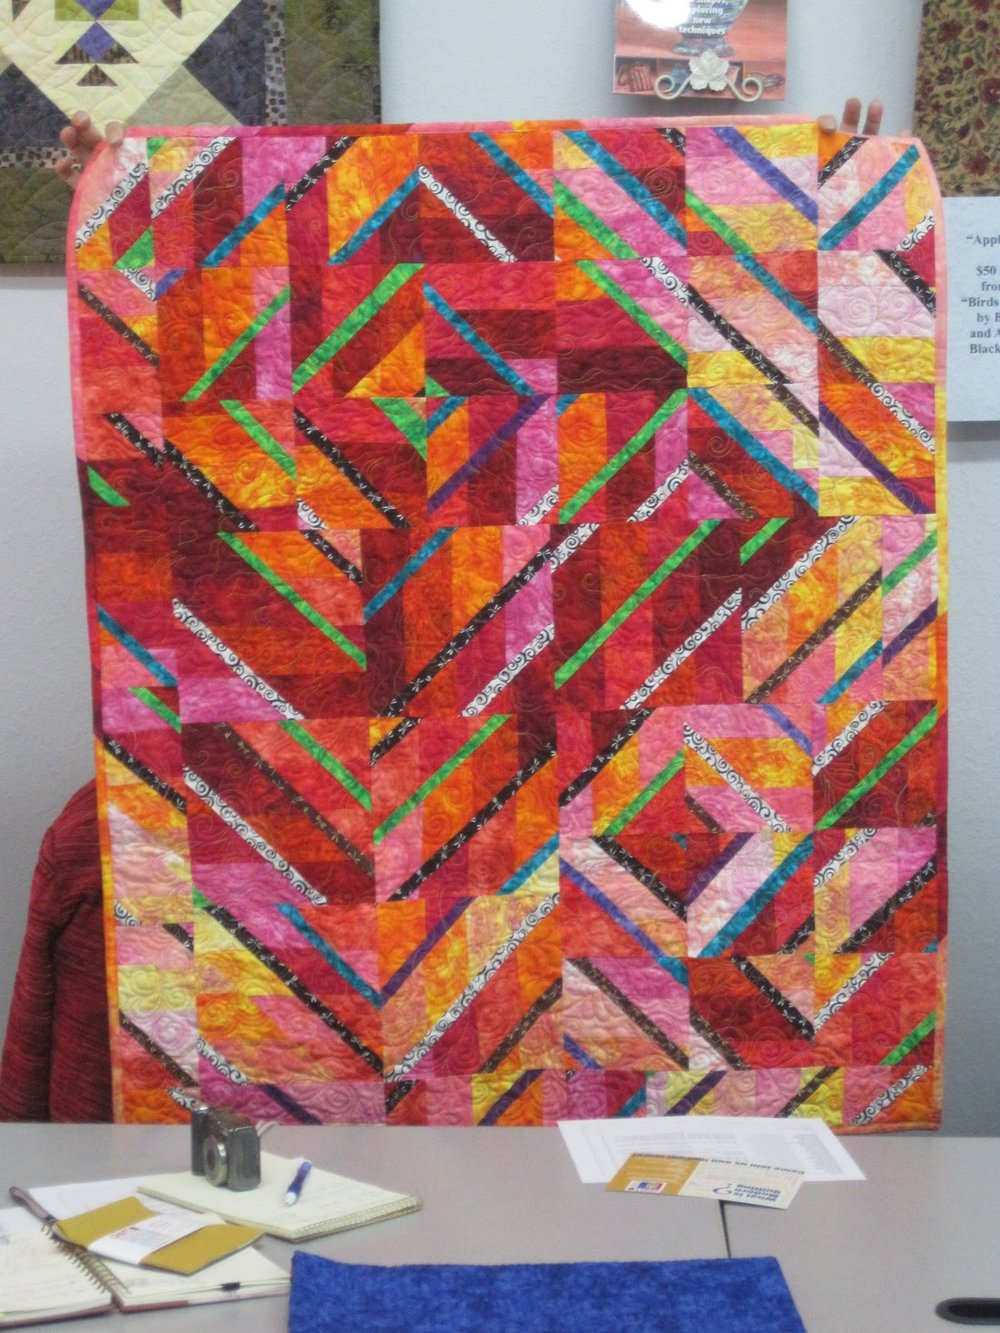 Quilt by Veronica Hofman-Ortega